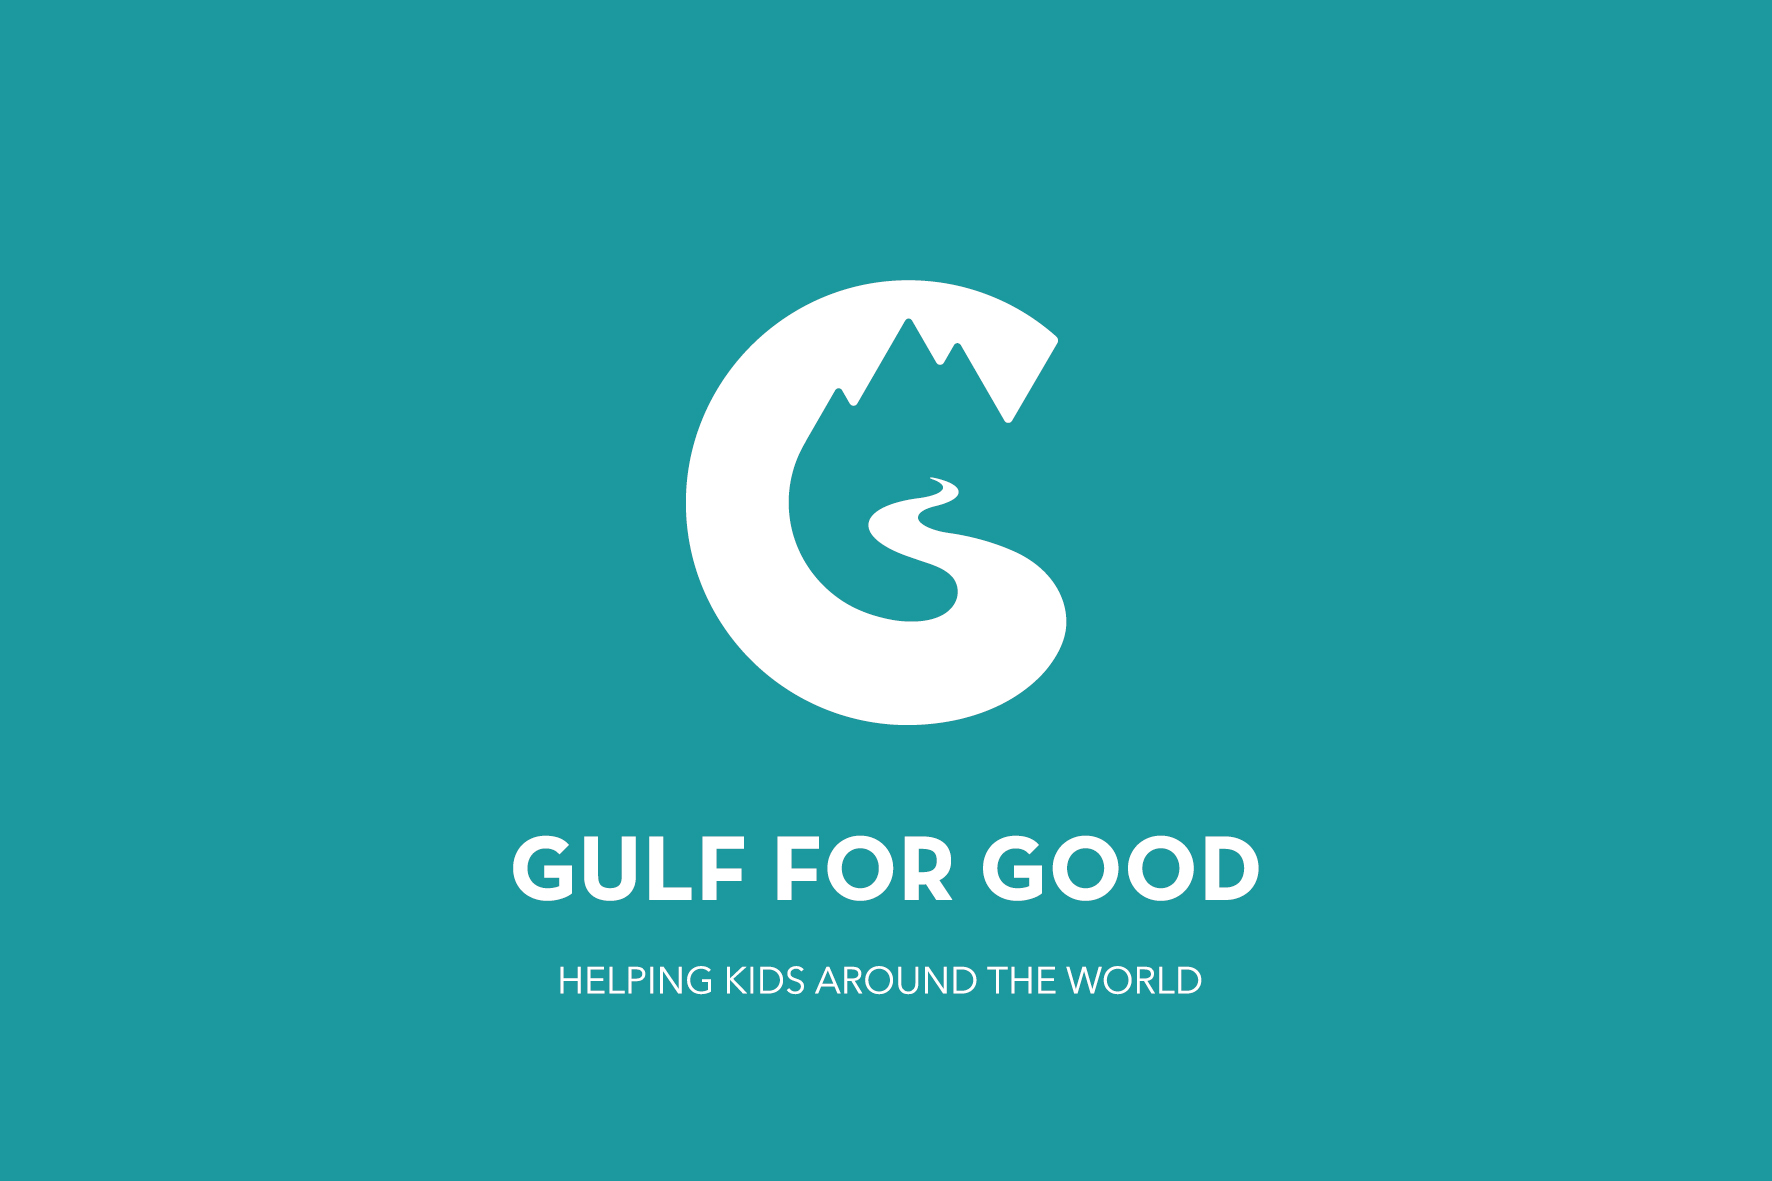 Gulf for Good